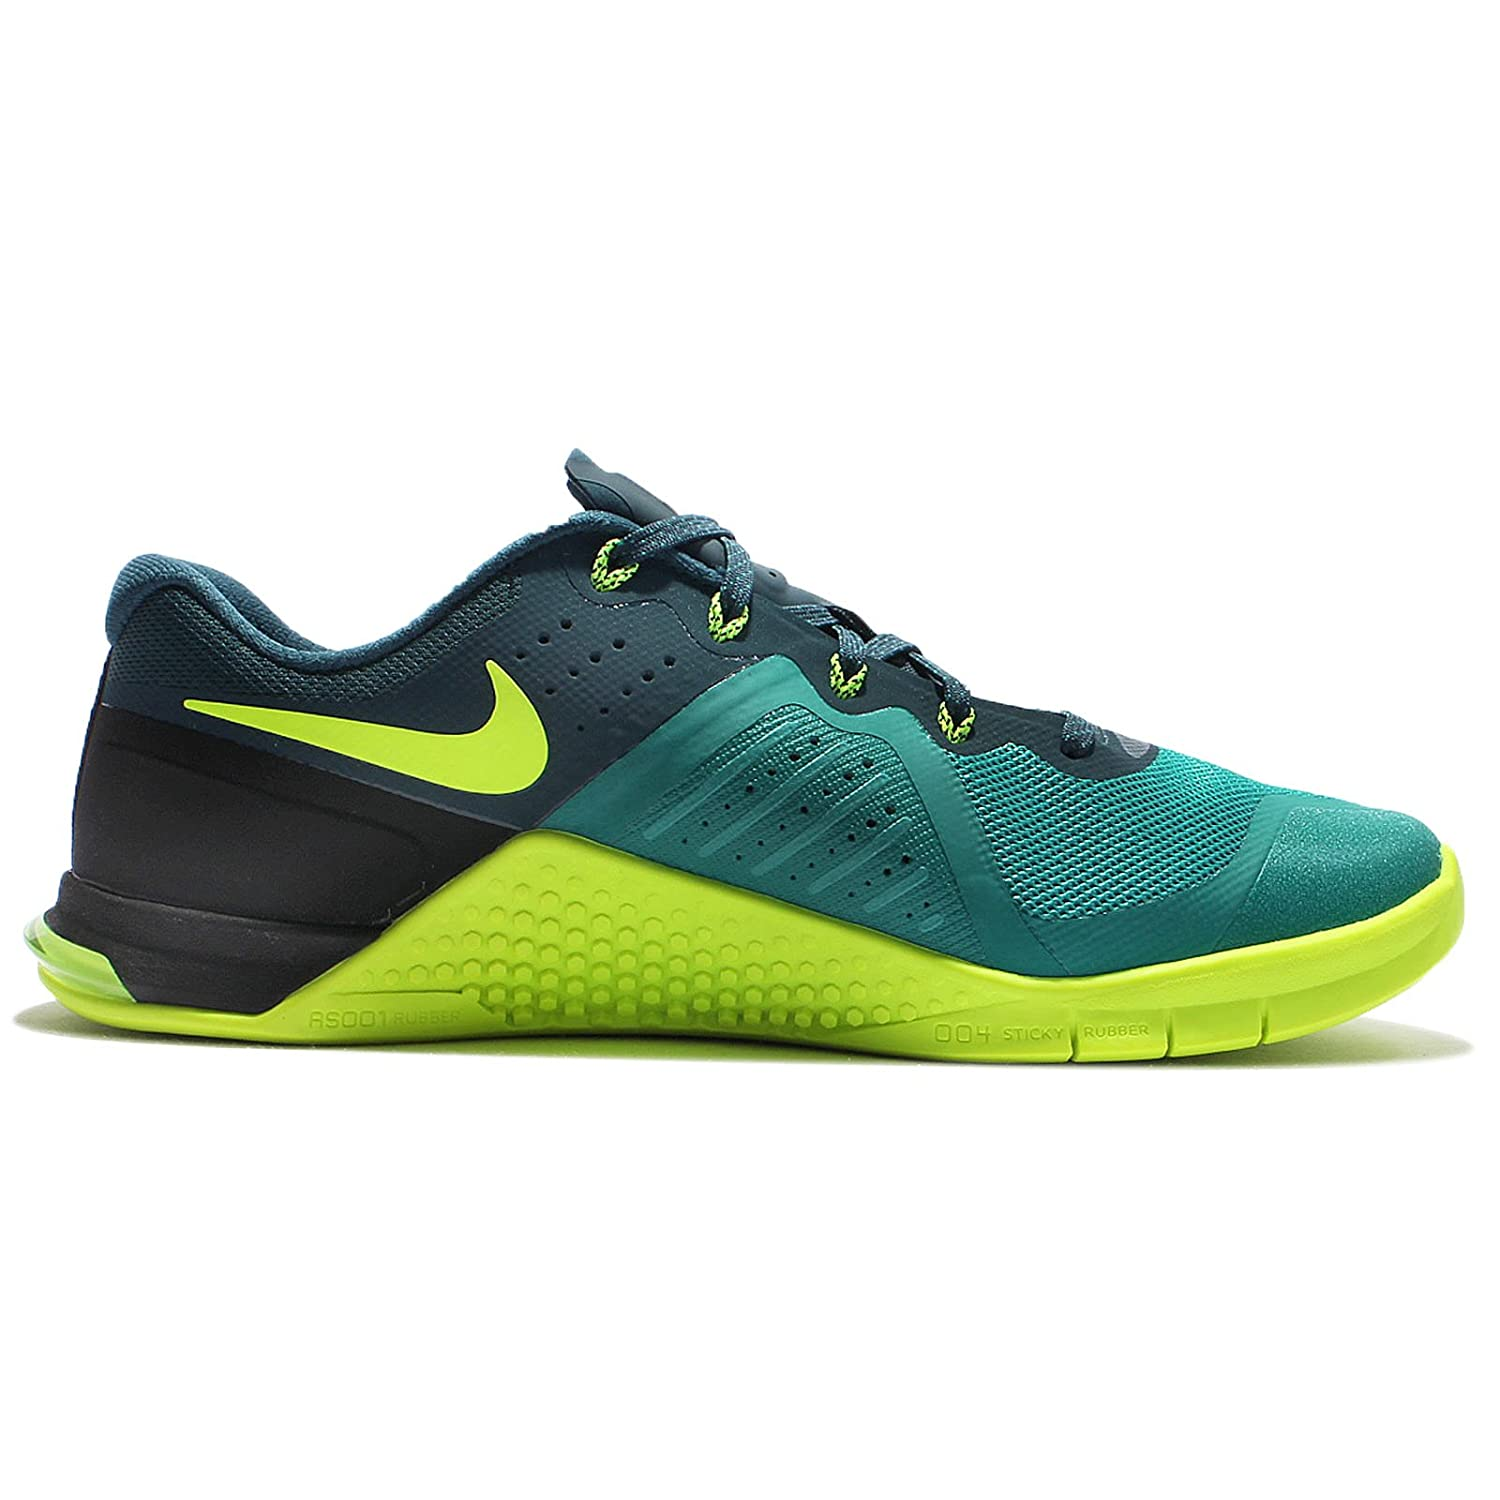 reputable site a2708 bf515 NIKE Mens Metcon 2 Synthetic Trainers Rio Teal   Volt-midnight Turq-black